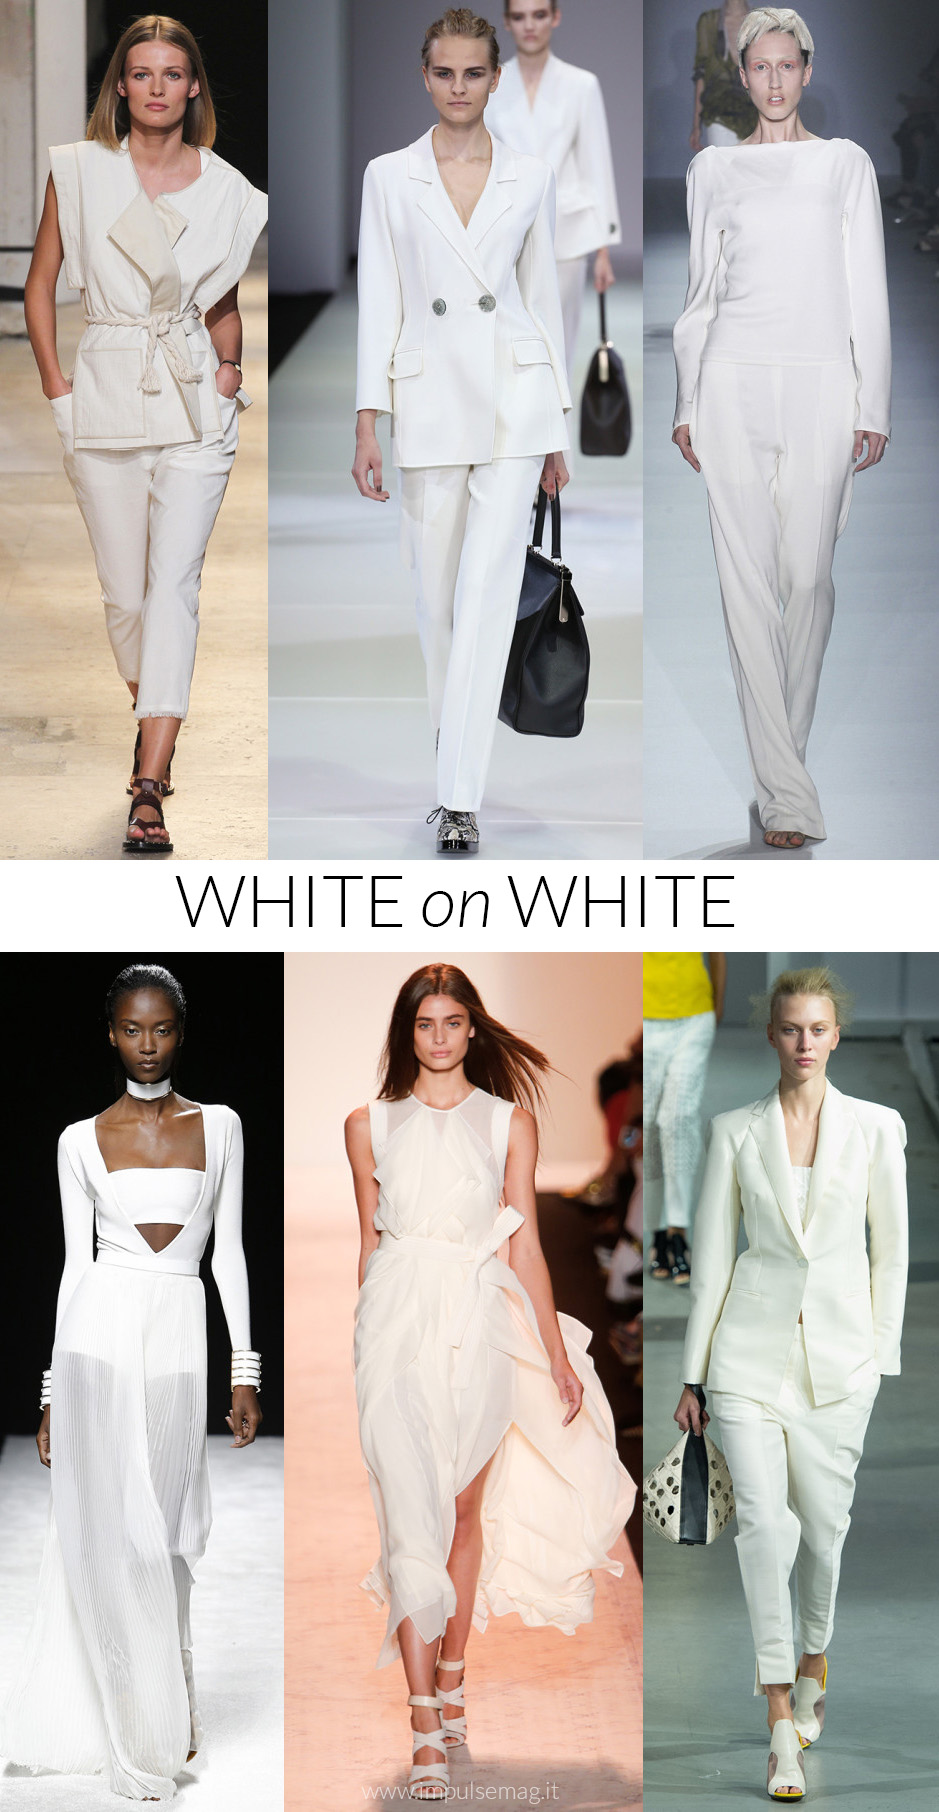 white trend moda primavera estate 2015 fashion blogger elena schiavon